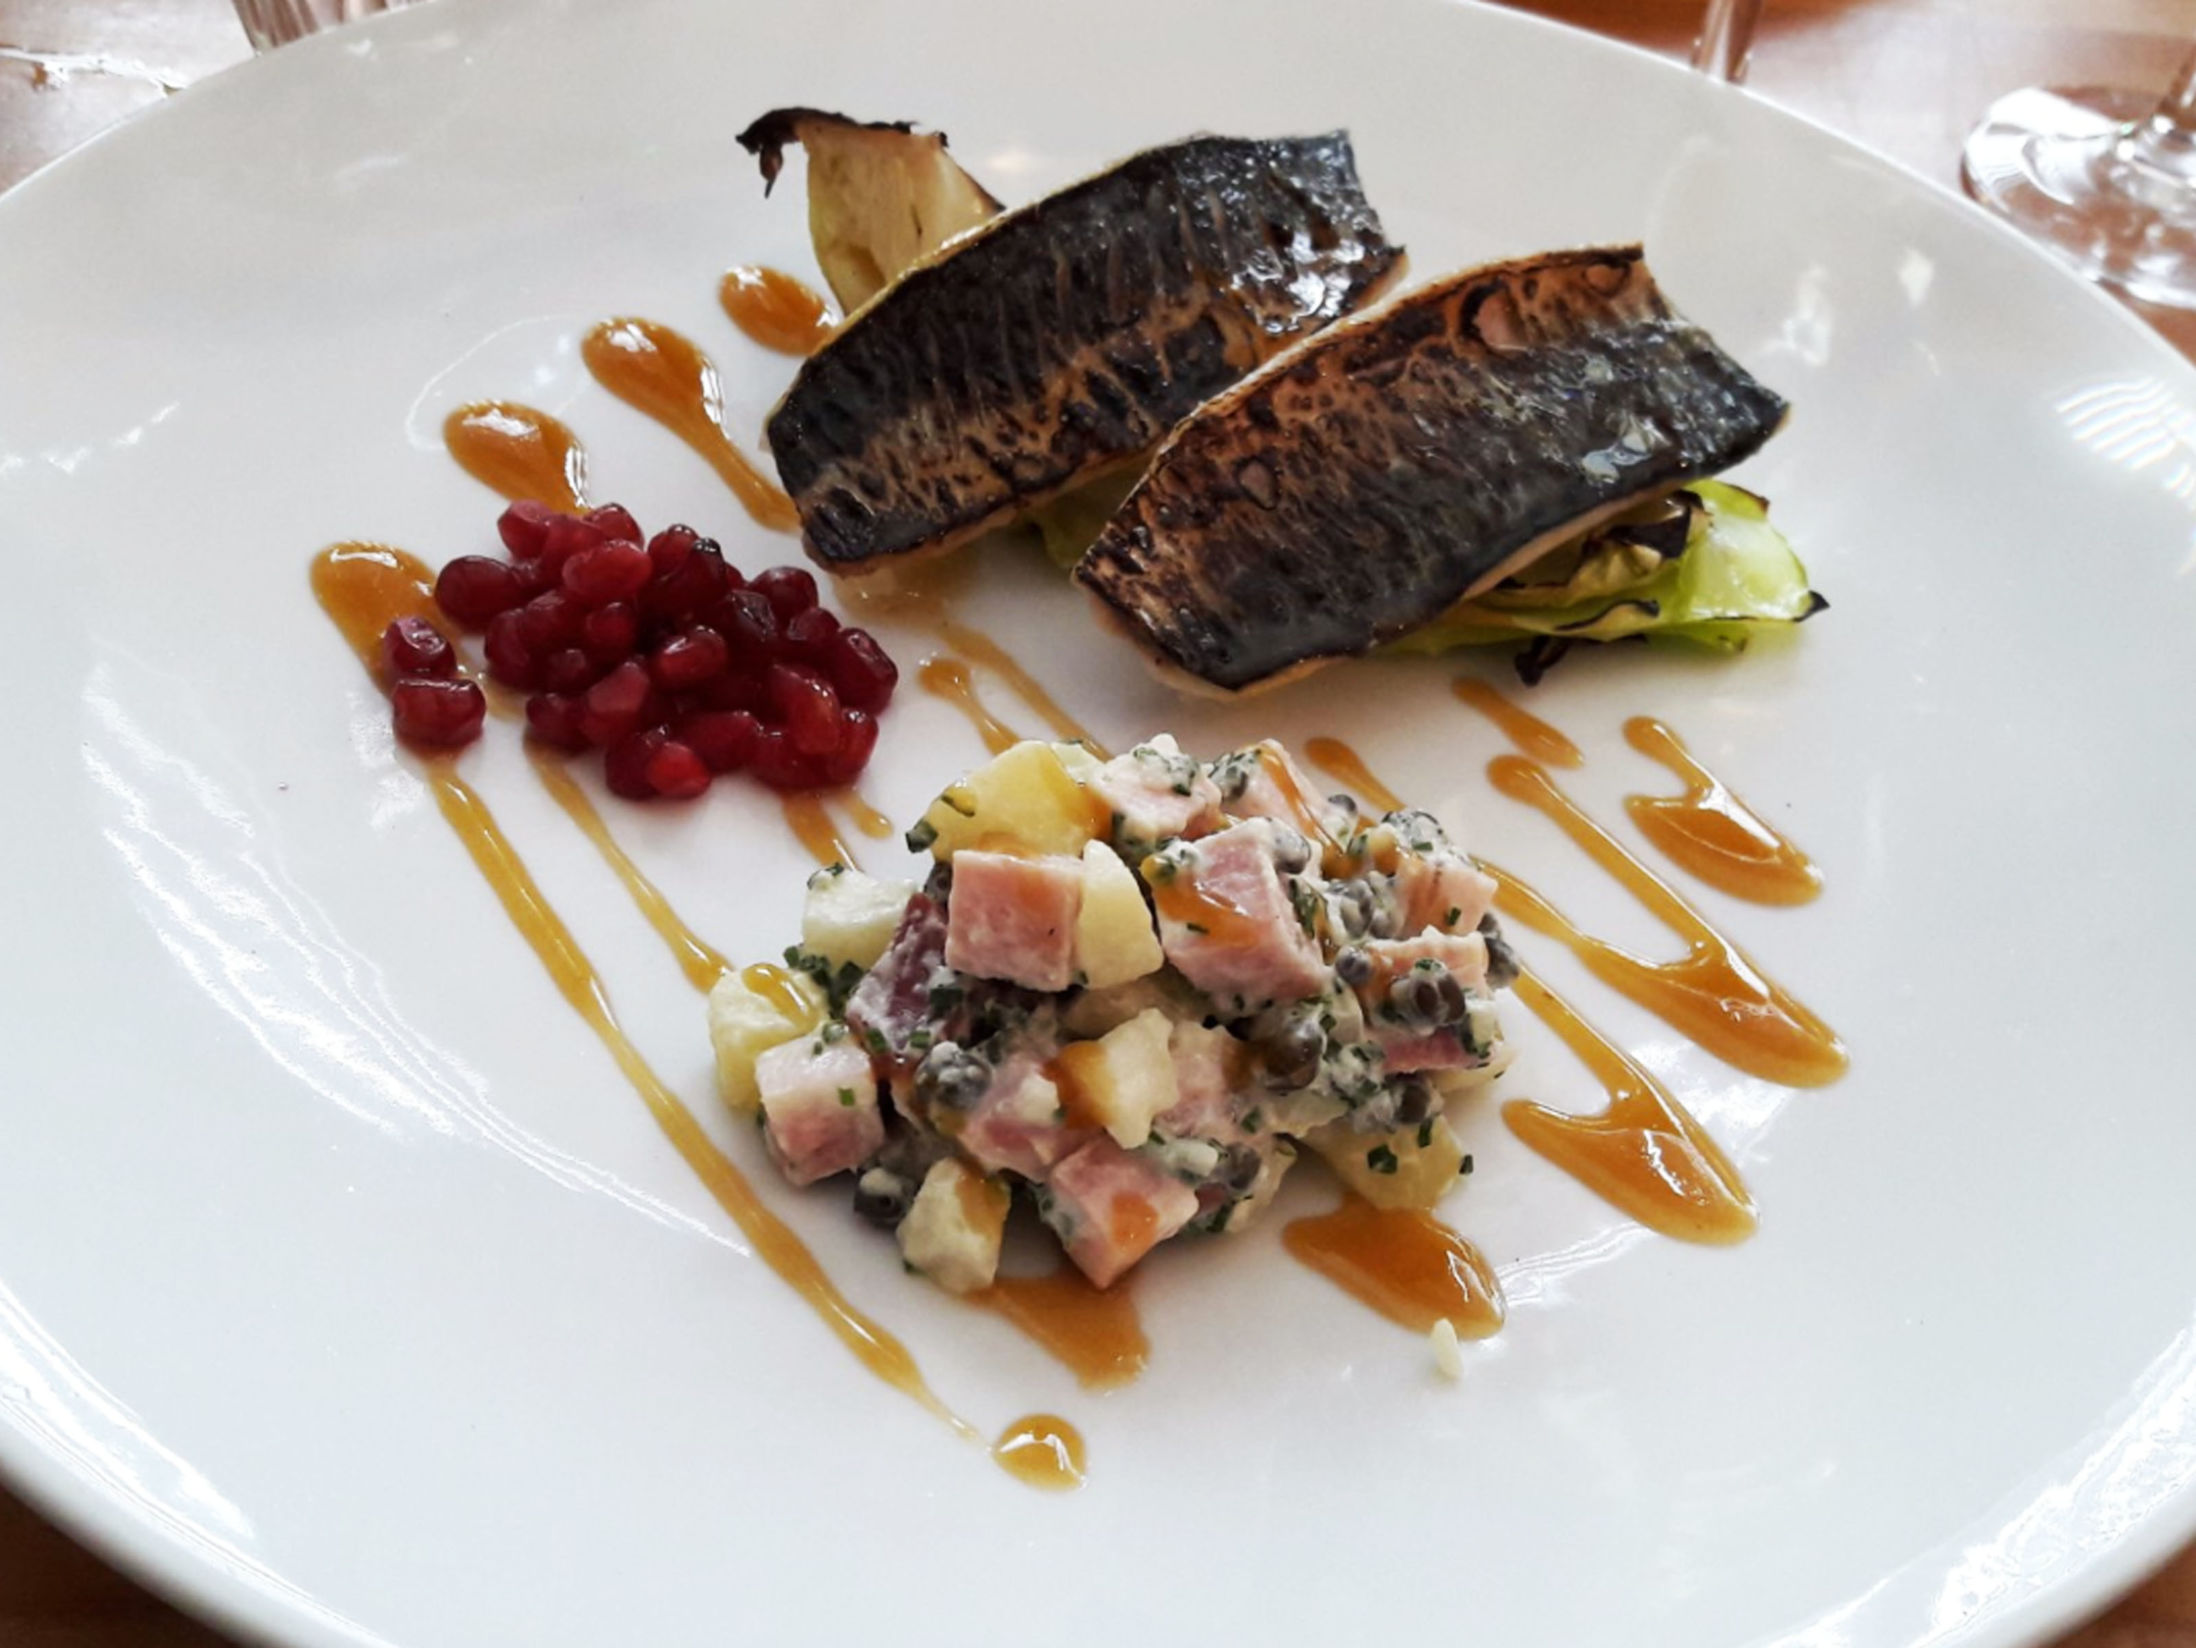 Sticky Walnut - Best Restaurants in Chester